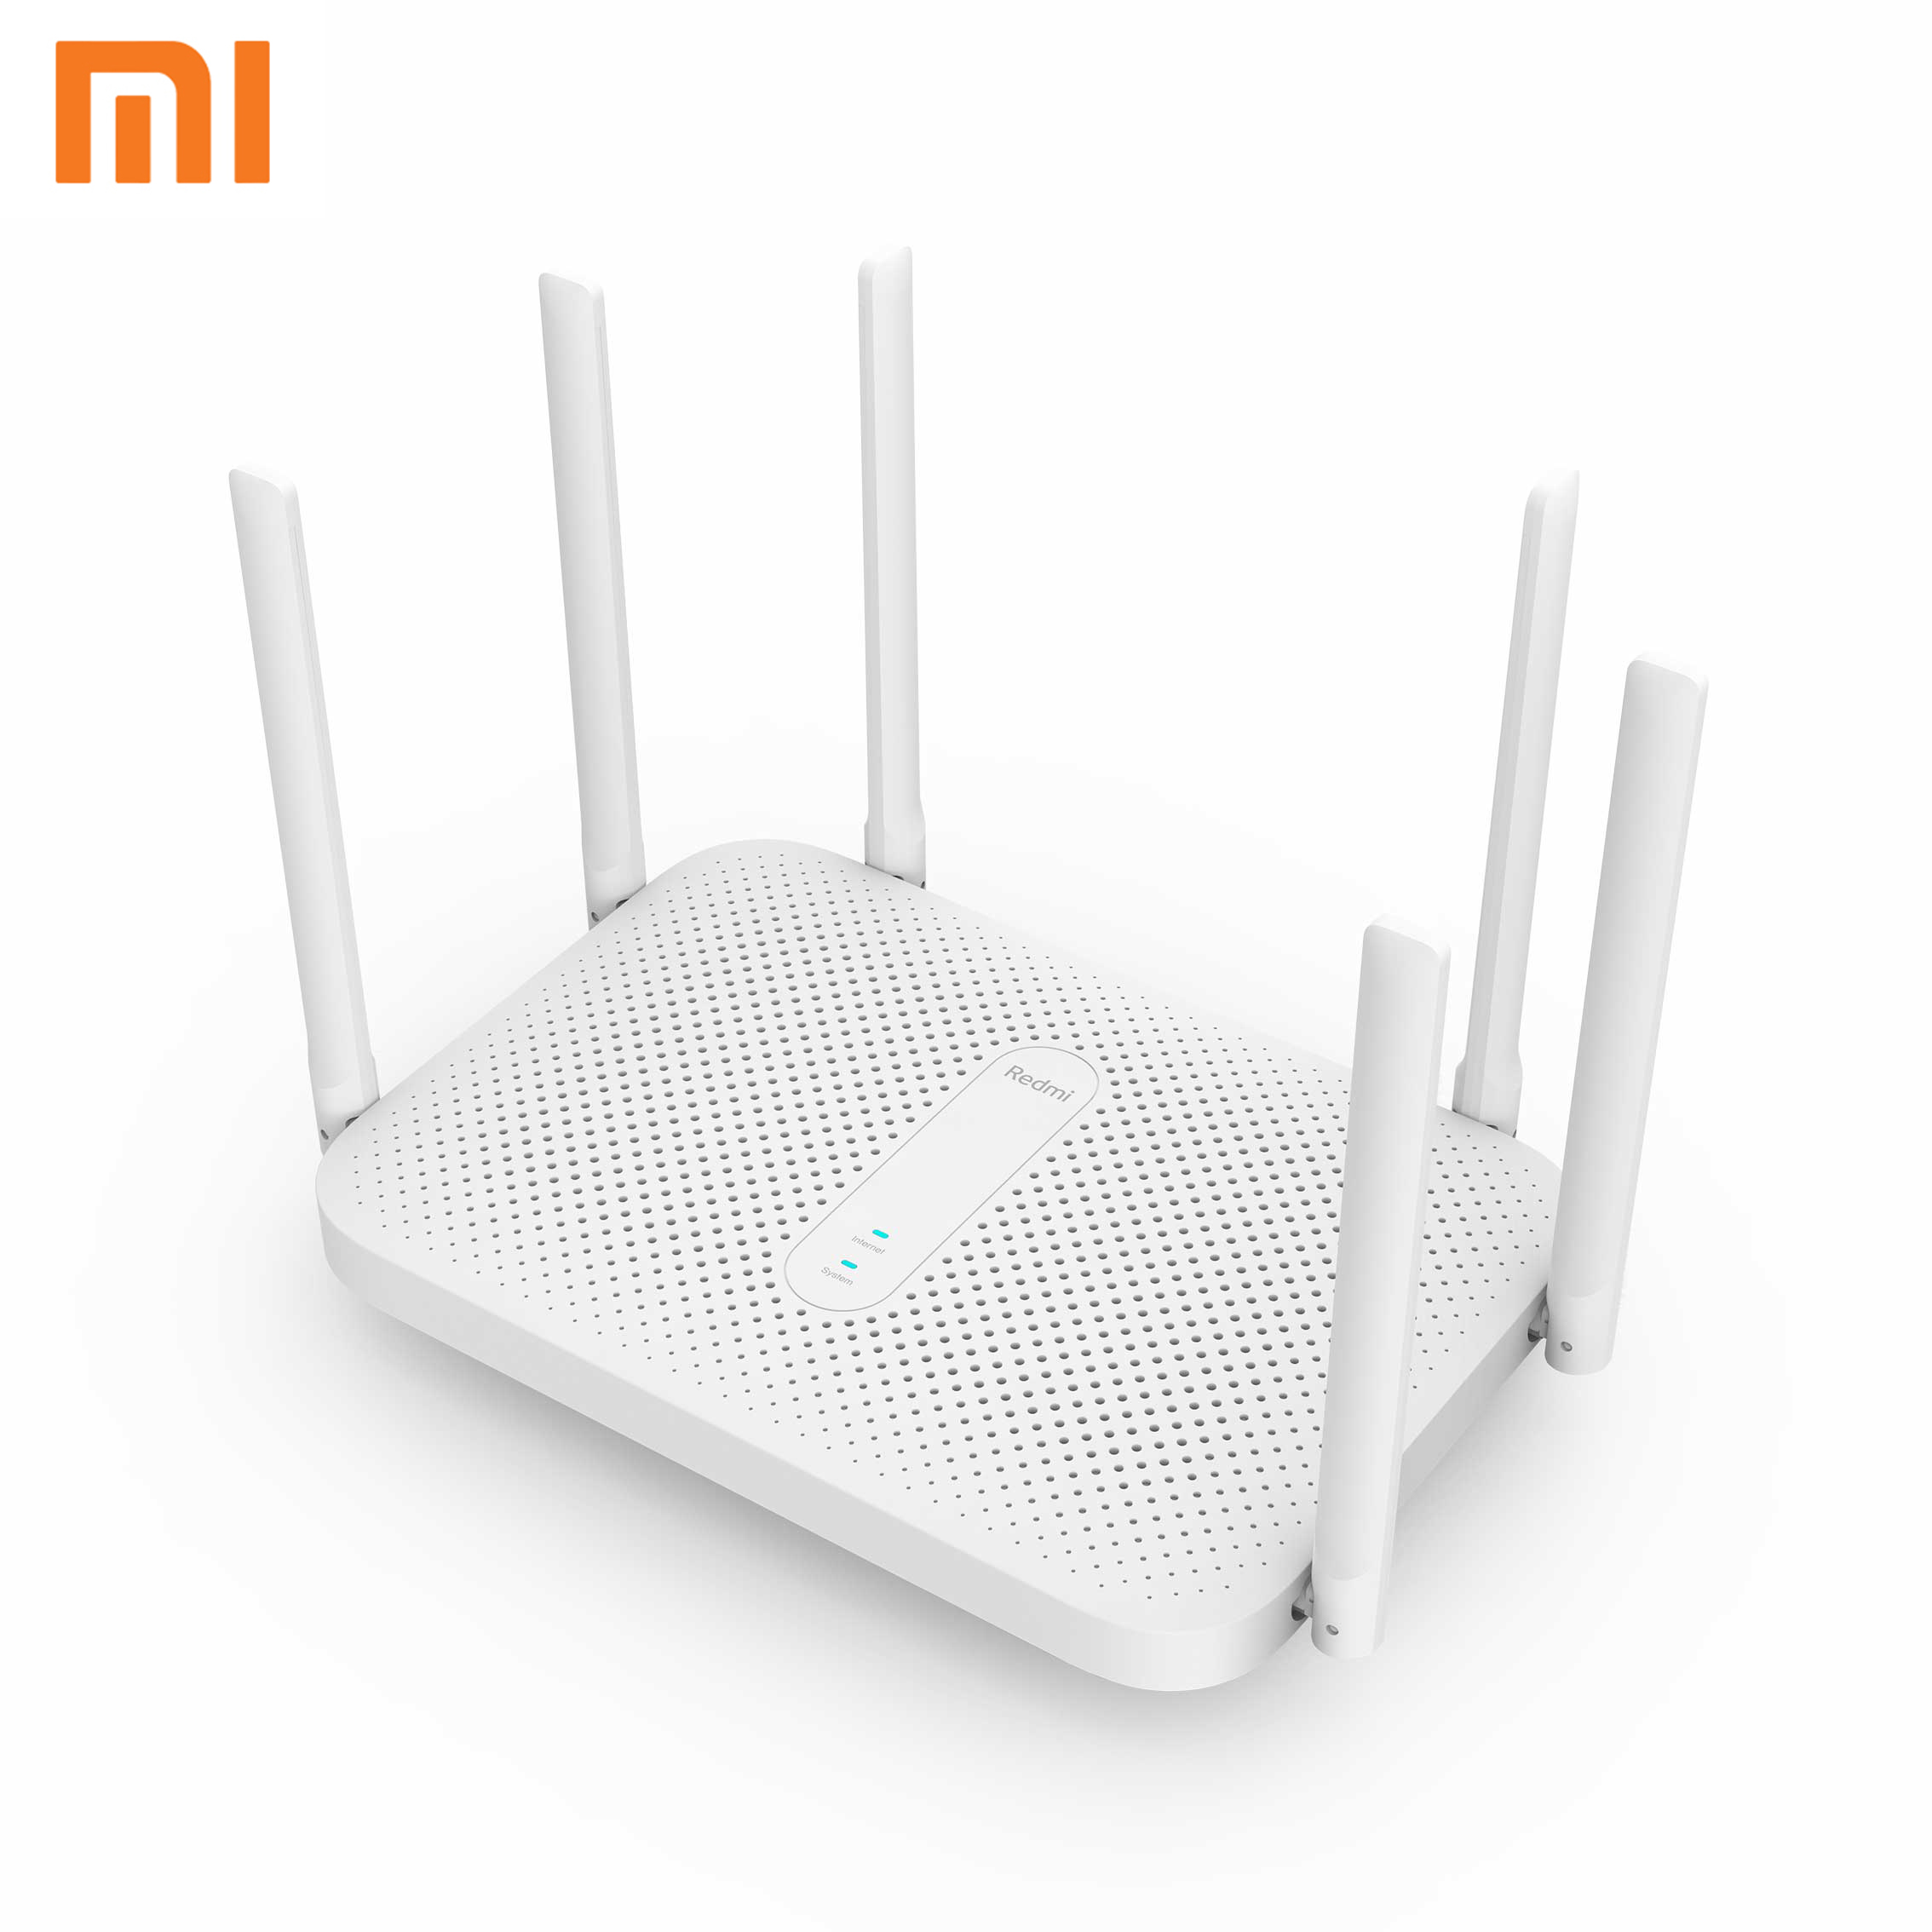 Xiaomi Redmi AC2100 Router Gigabit Dual-Band Wireless Router Wifi Repeater with 6 High Gain Antennas Wider Coverage Easy setup(China)